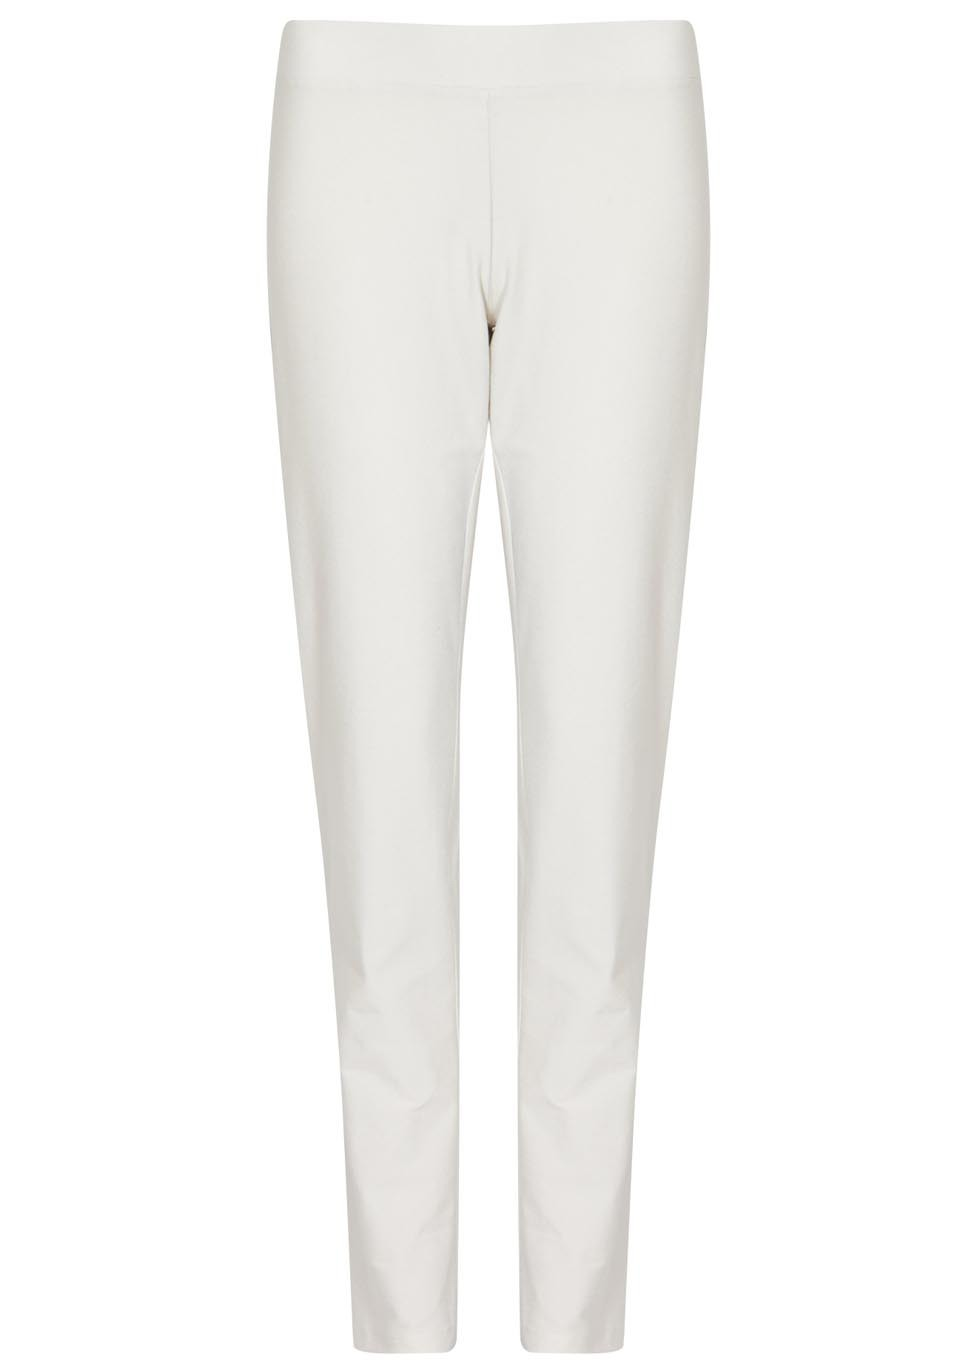 Off White Stretch Twill Skinny Trousers - length: standard; pattern: plain; style: leggings; waist: mid/regular rise; predominant colour: white; occasions: casual, creative work; fit: skinny/tight leg; pattern type: fabric; texture group: jersey - stretchy/drapey; fibres: viscose/rayon - mix; season: s/s 2016; wardrobe: basic